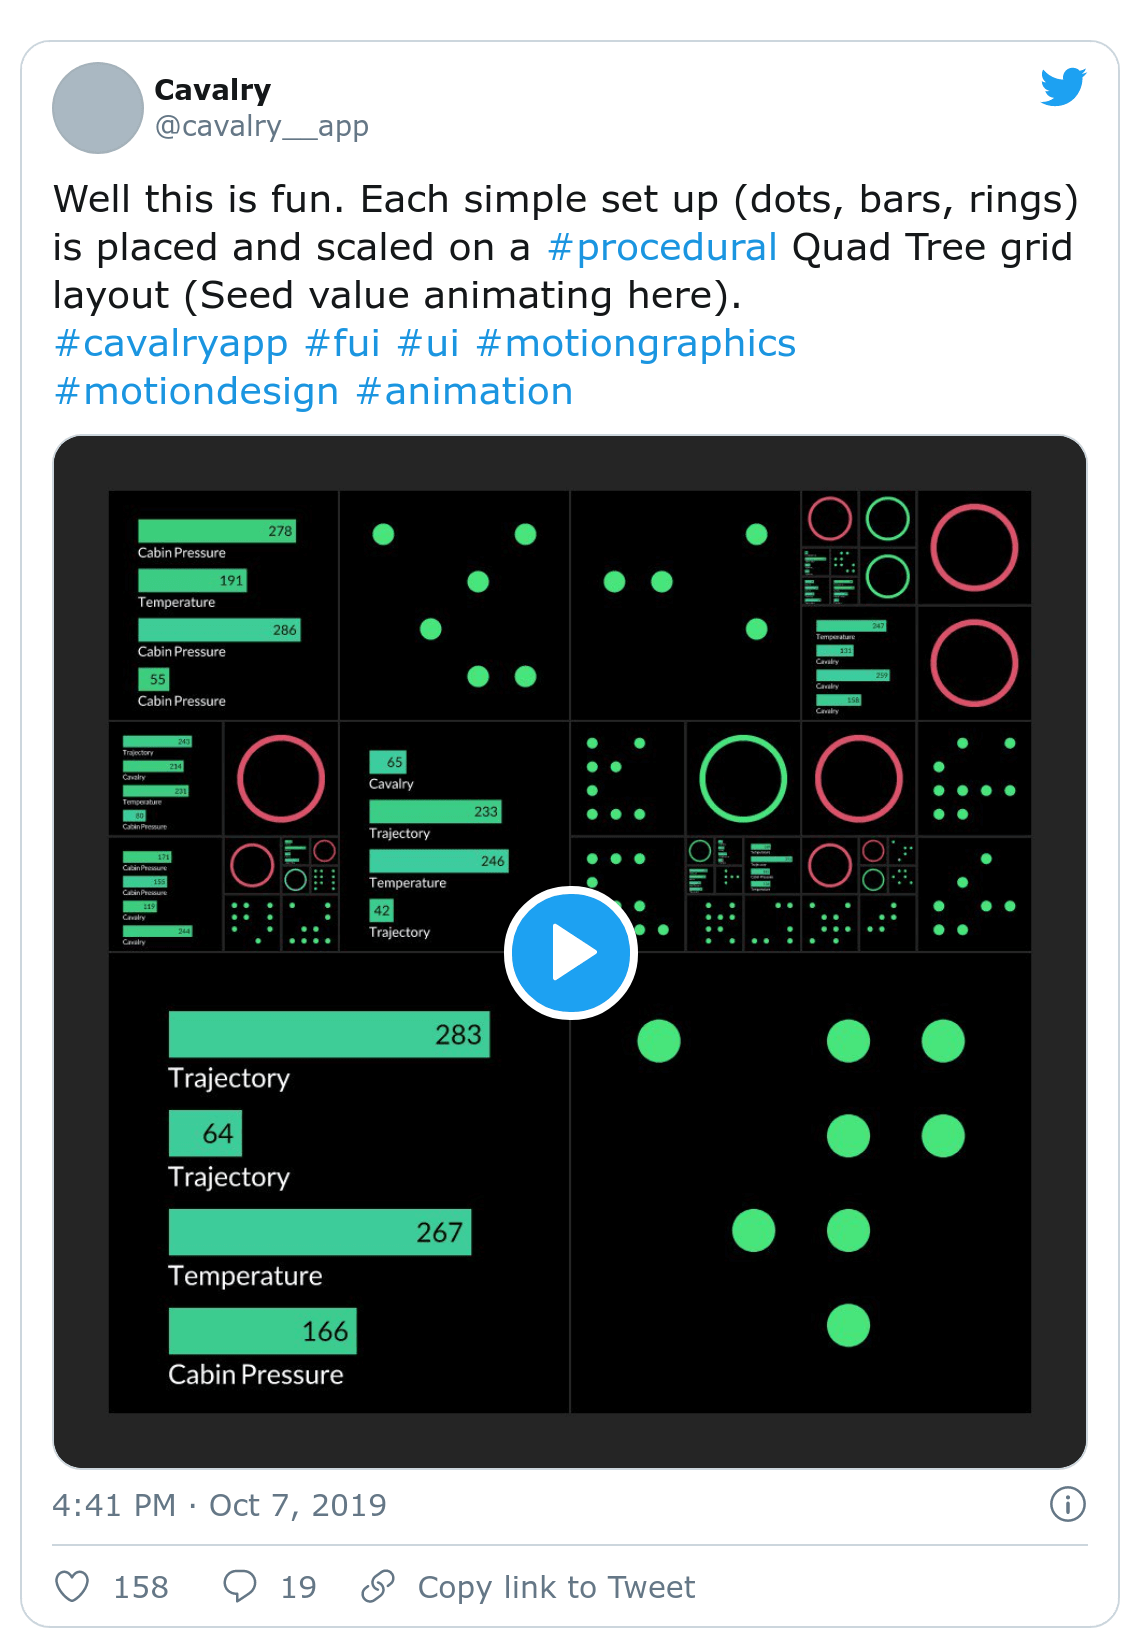 Screenshot of Cavalry tweet about quad tree grids